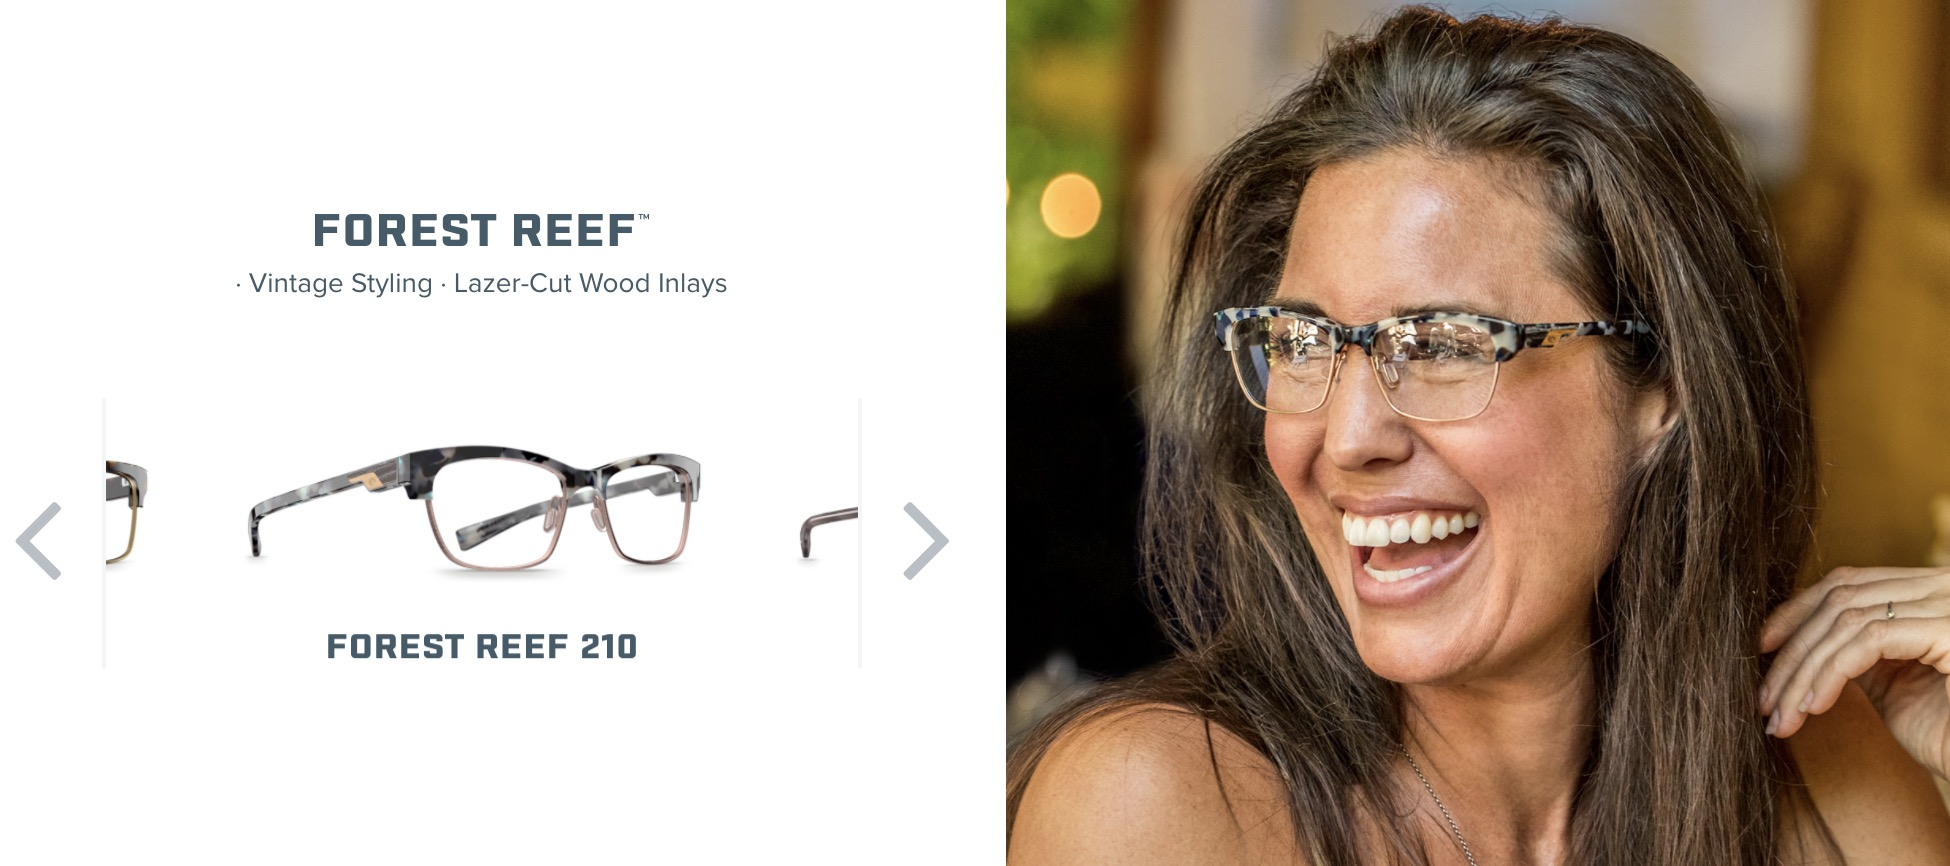 Costa Forest Reef Glasses